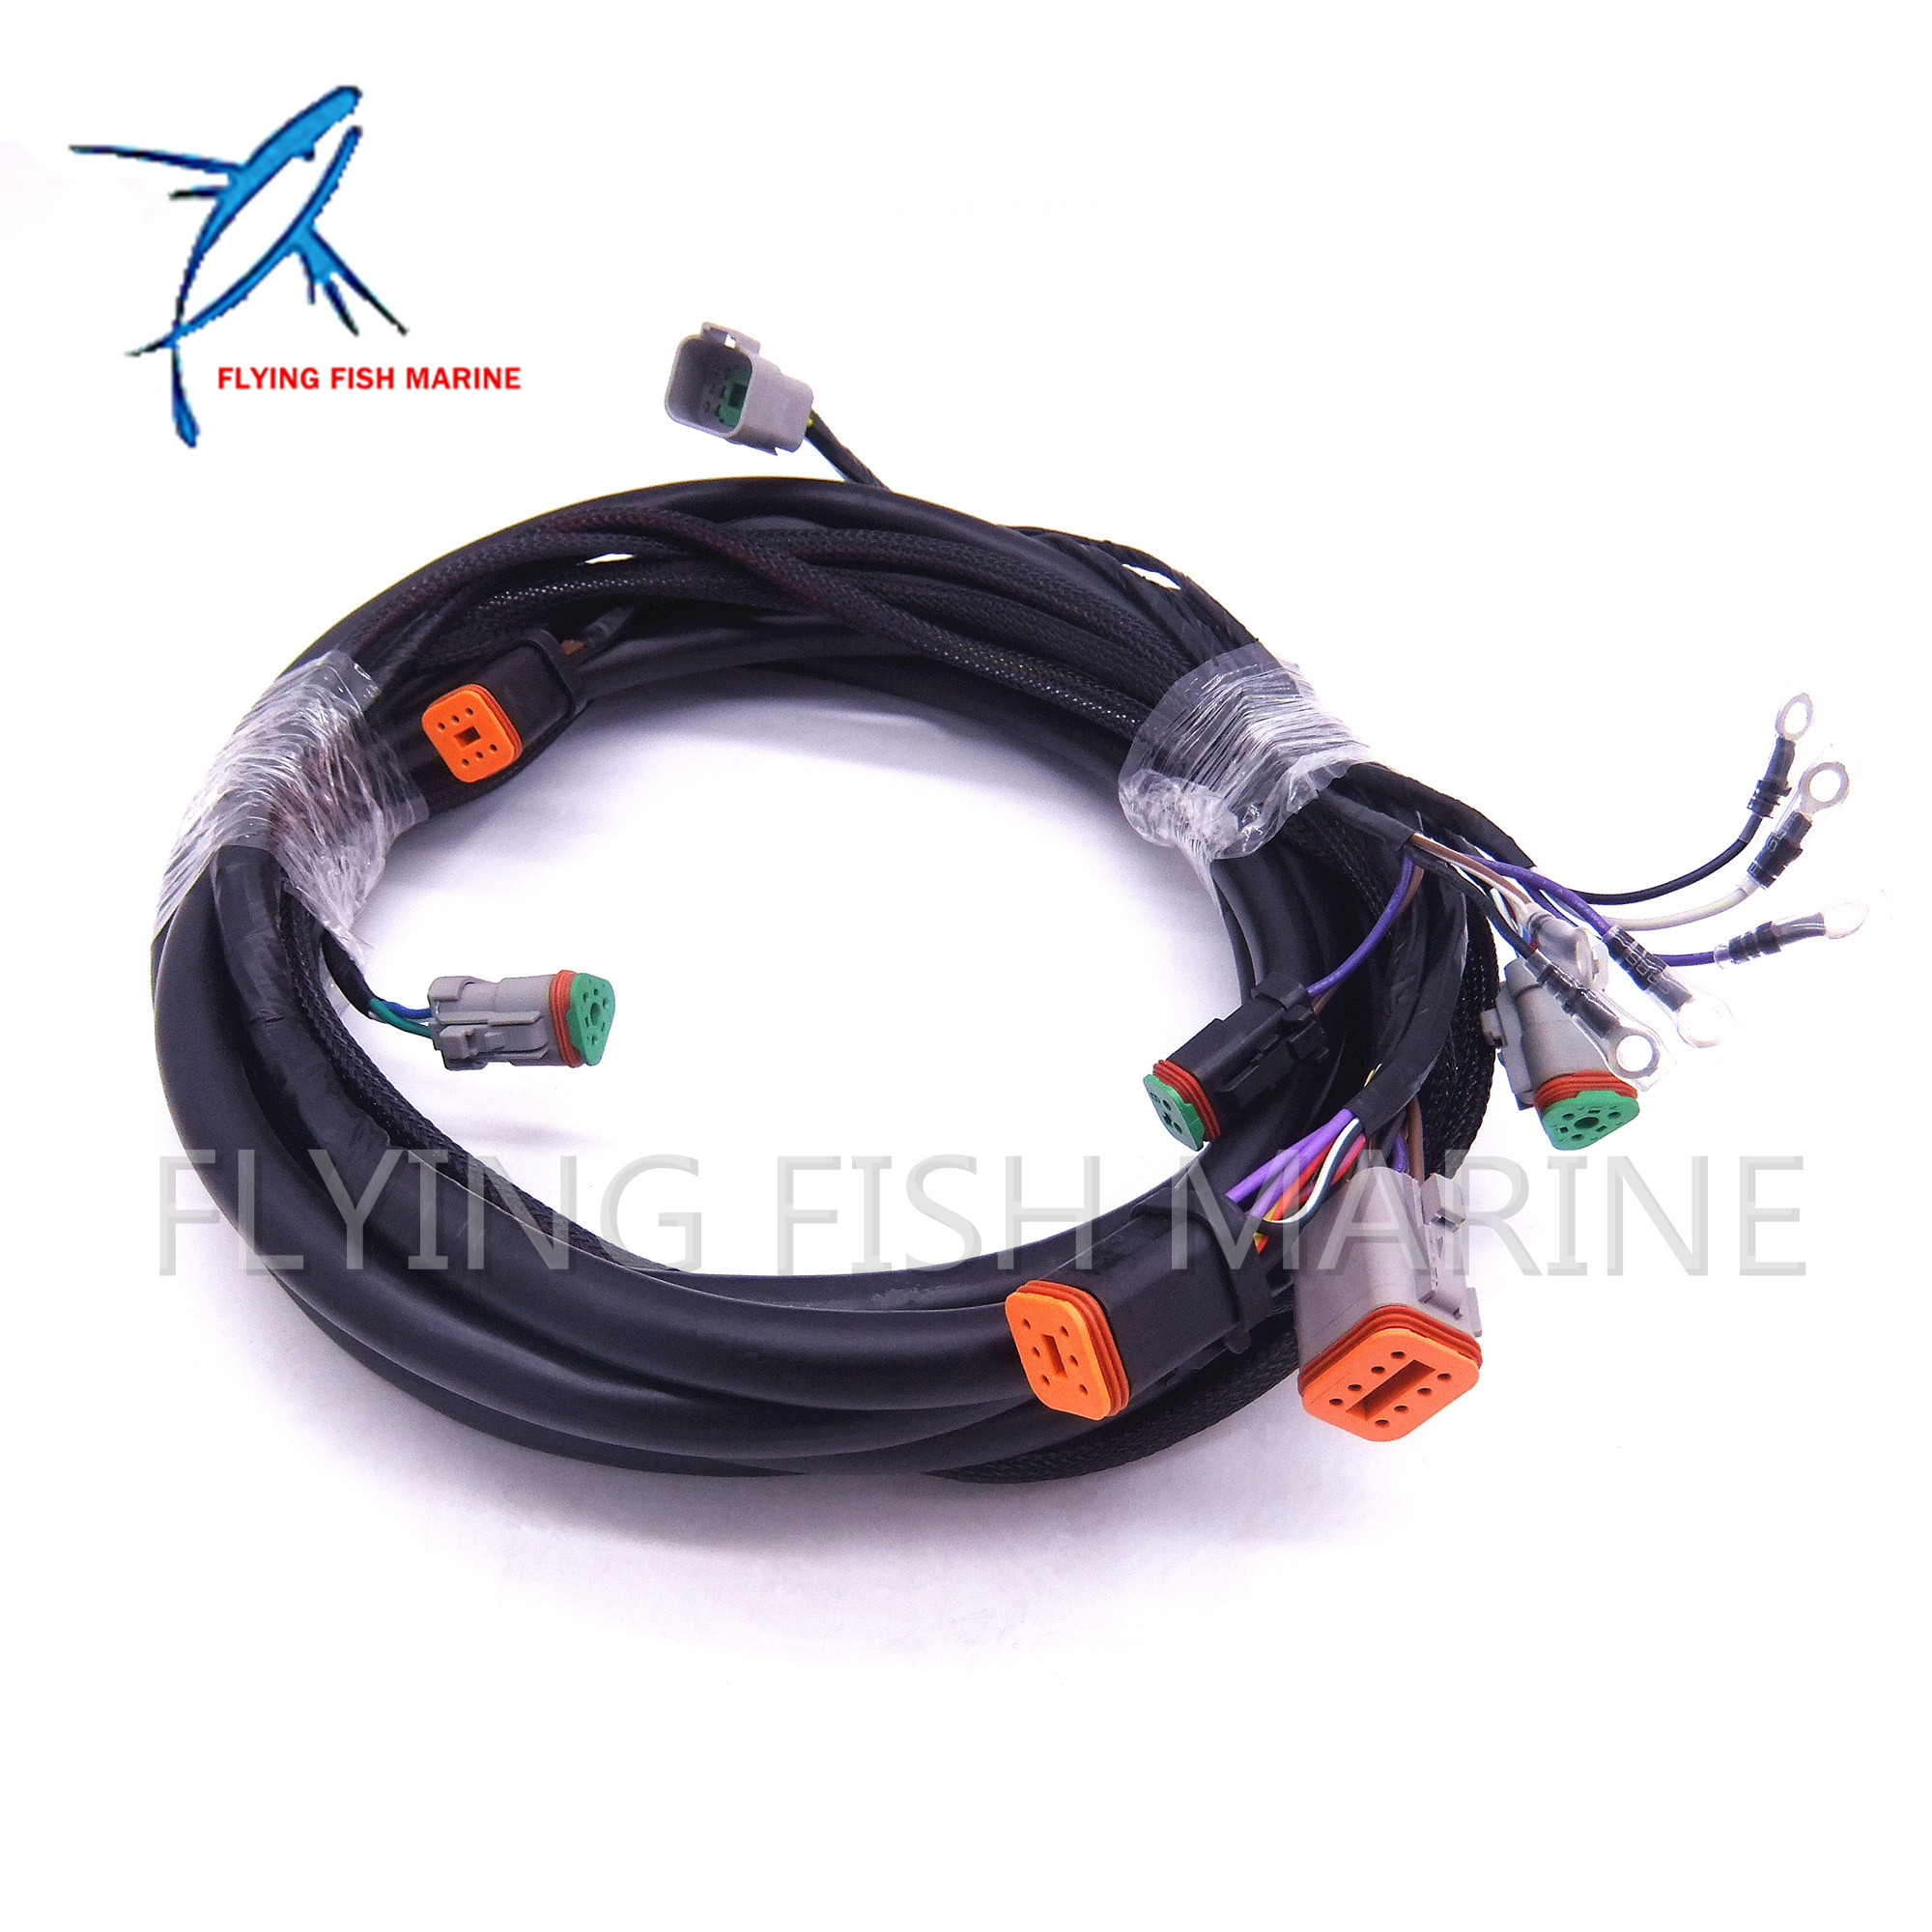 Omc Co Wiring Harness on omc remote control, omc fuel tank, omc cobra outdrive, omc cobra parts diagram, omc oil cooler, omc gauges, omc inboard outboard wiring diagrams, omc neutral safety switch, omc voltage regulator, omc control box,